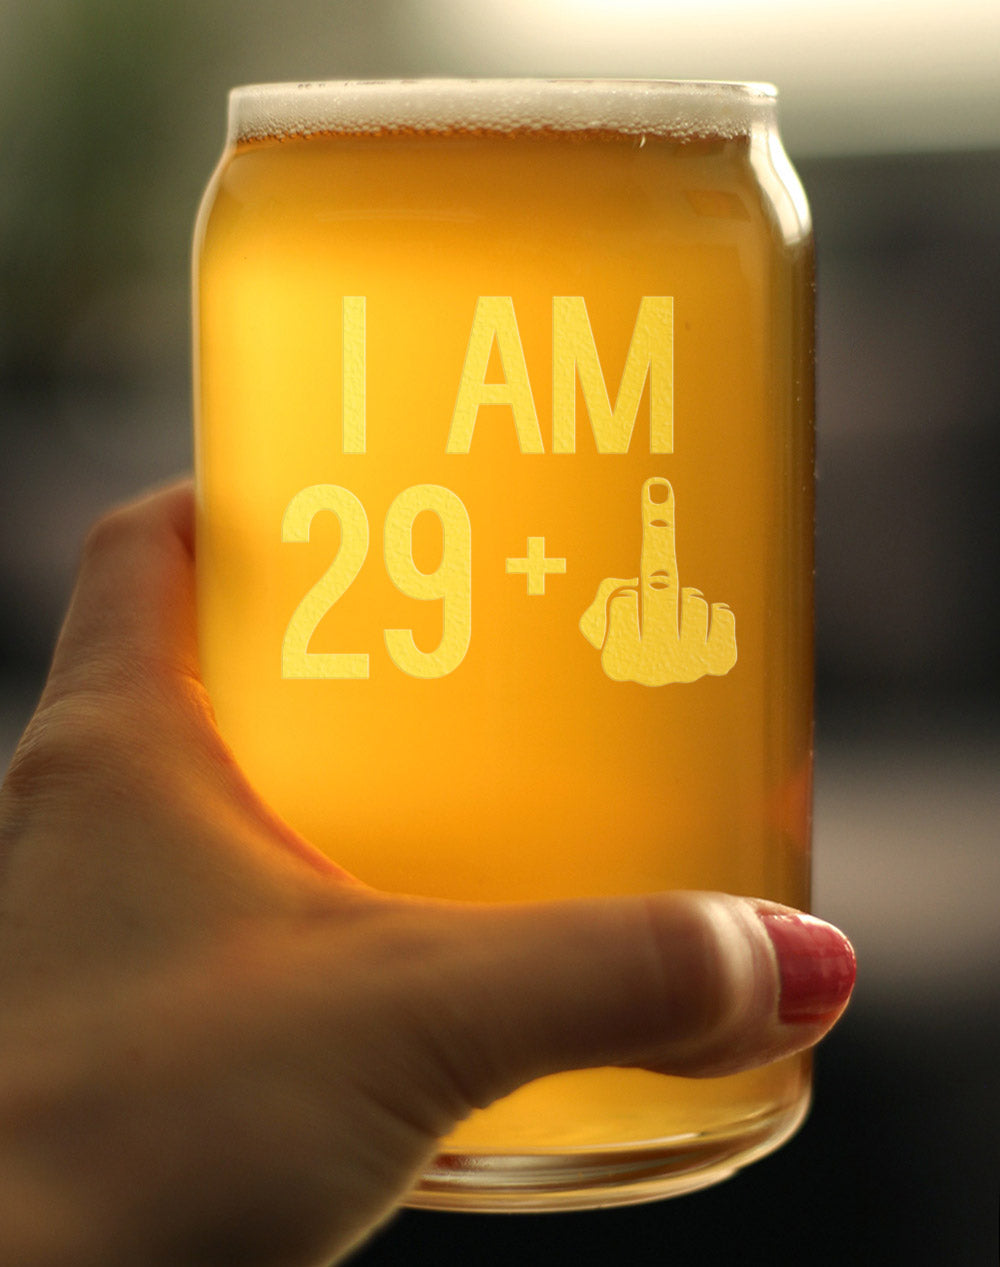 29 + 1 Middle Finger - 16 Ounce Beer Can Pint Glass